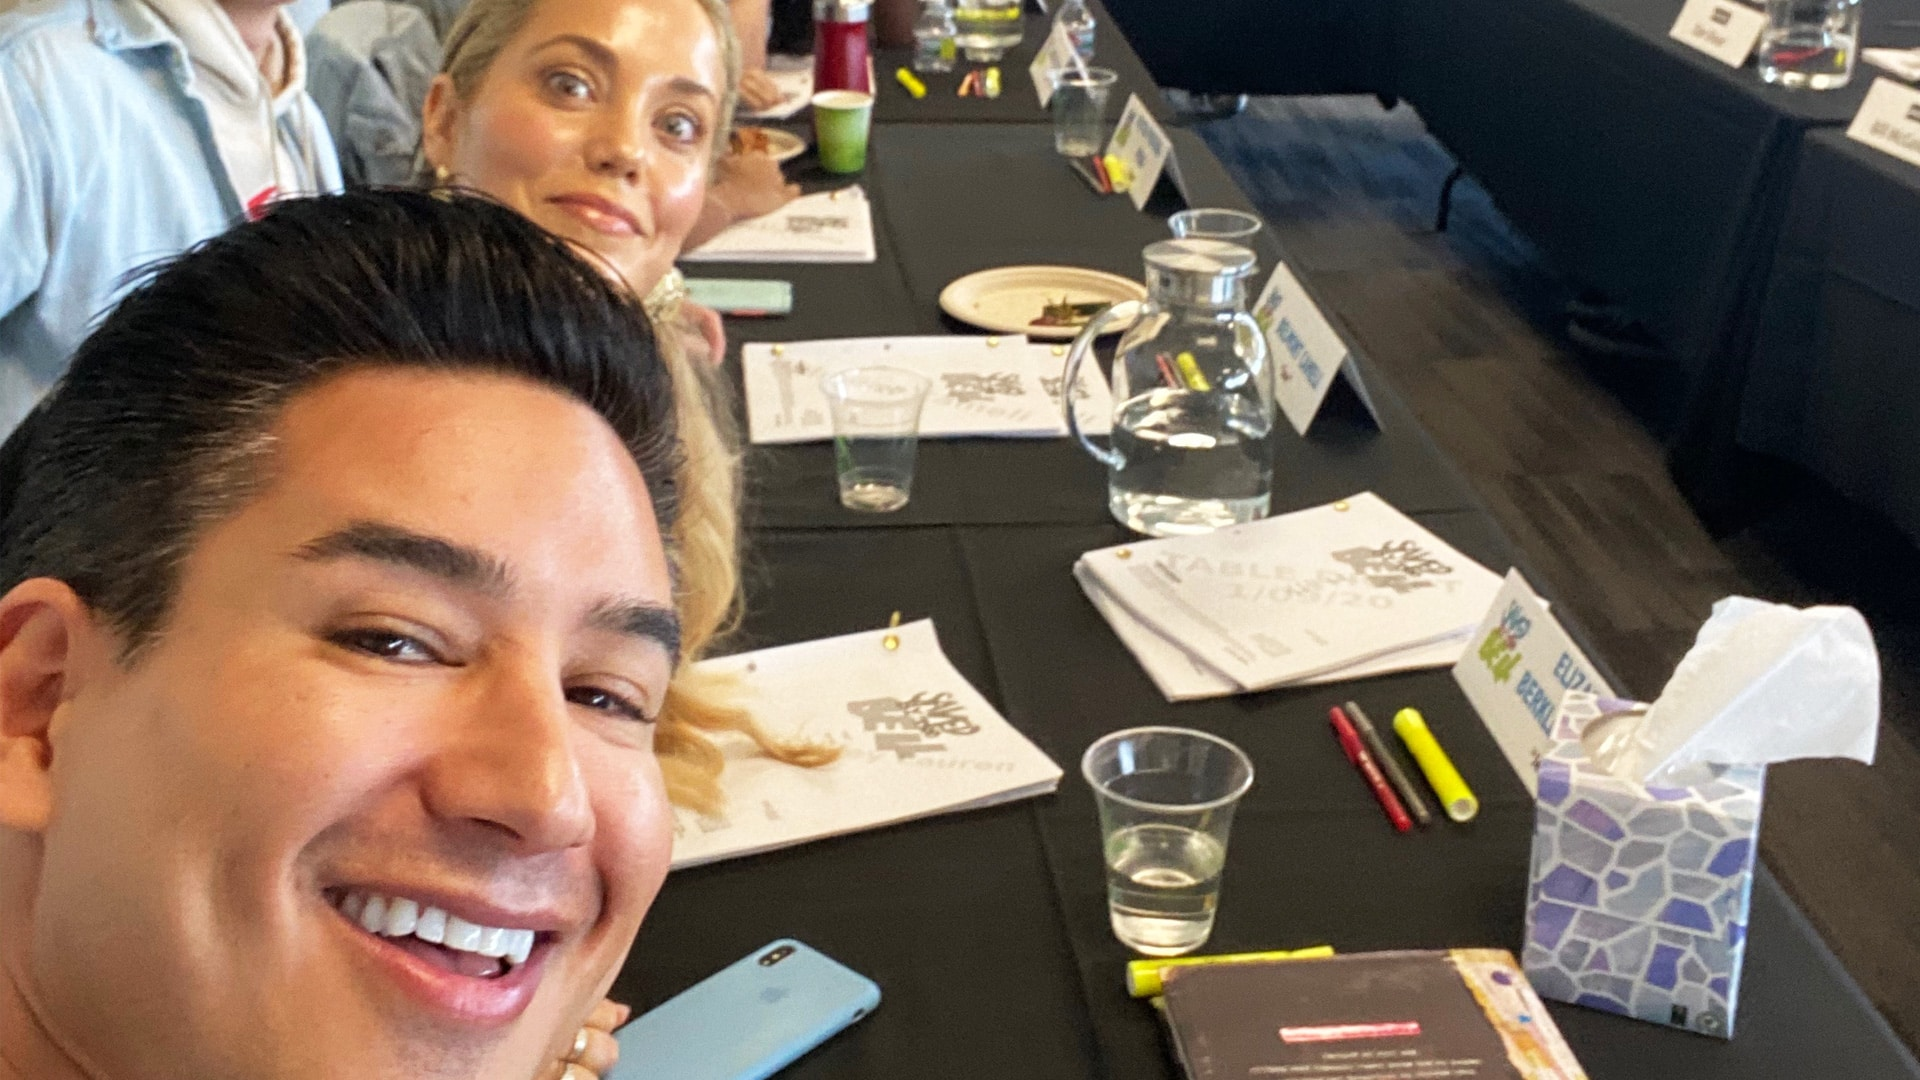 Elizabeth Berkley and Mario Lopes at the table read for the reboot of Saved by the Bell